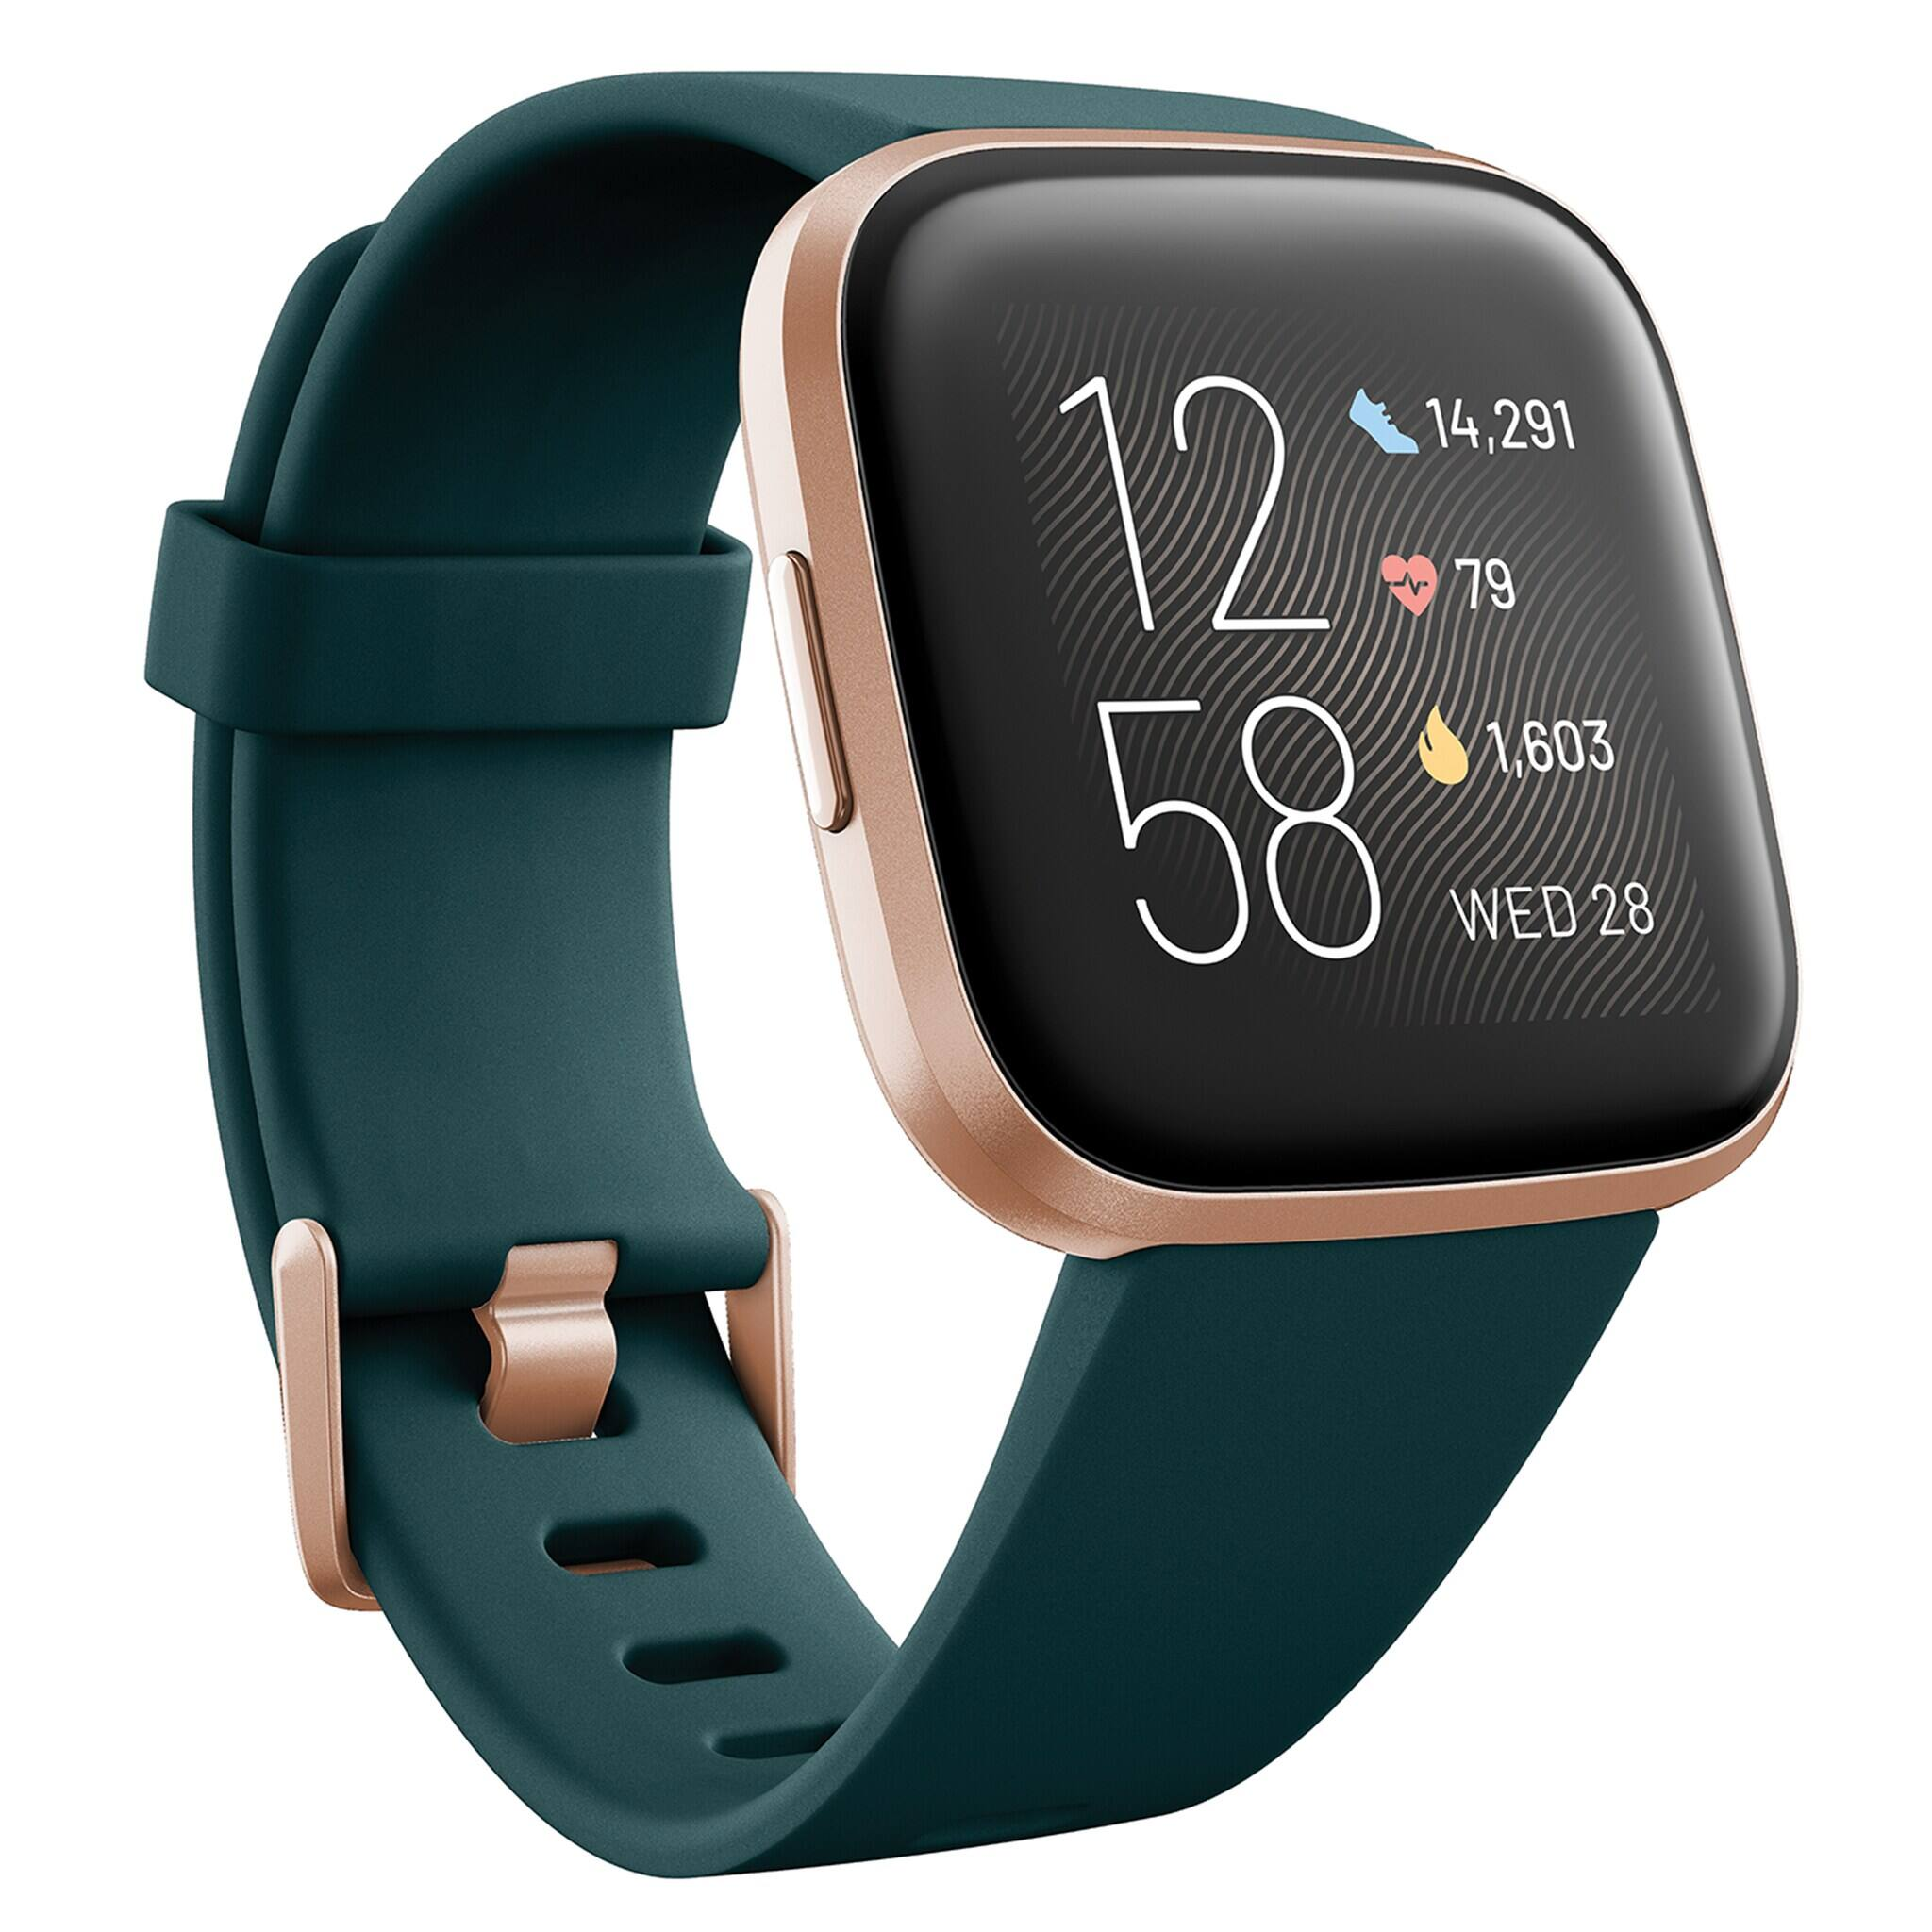 Fitbit Versa 2 Smartwatch (Various Colors) $149.99